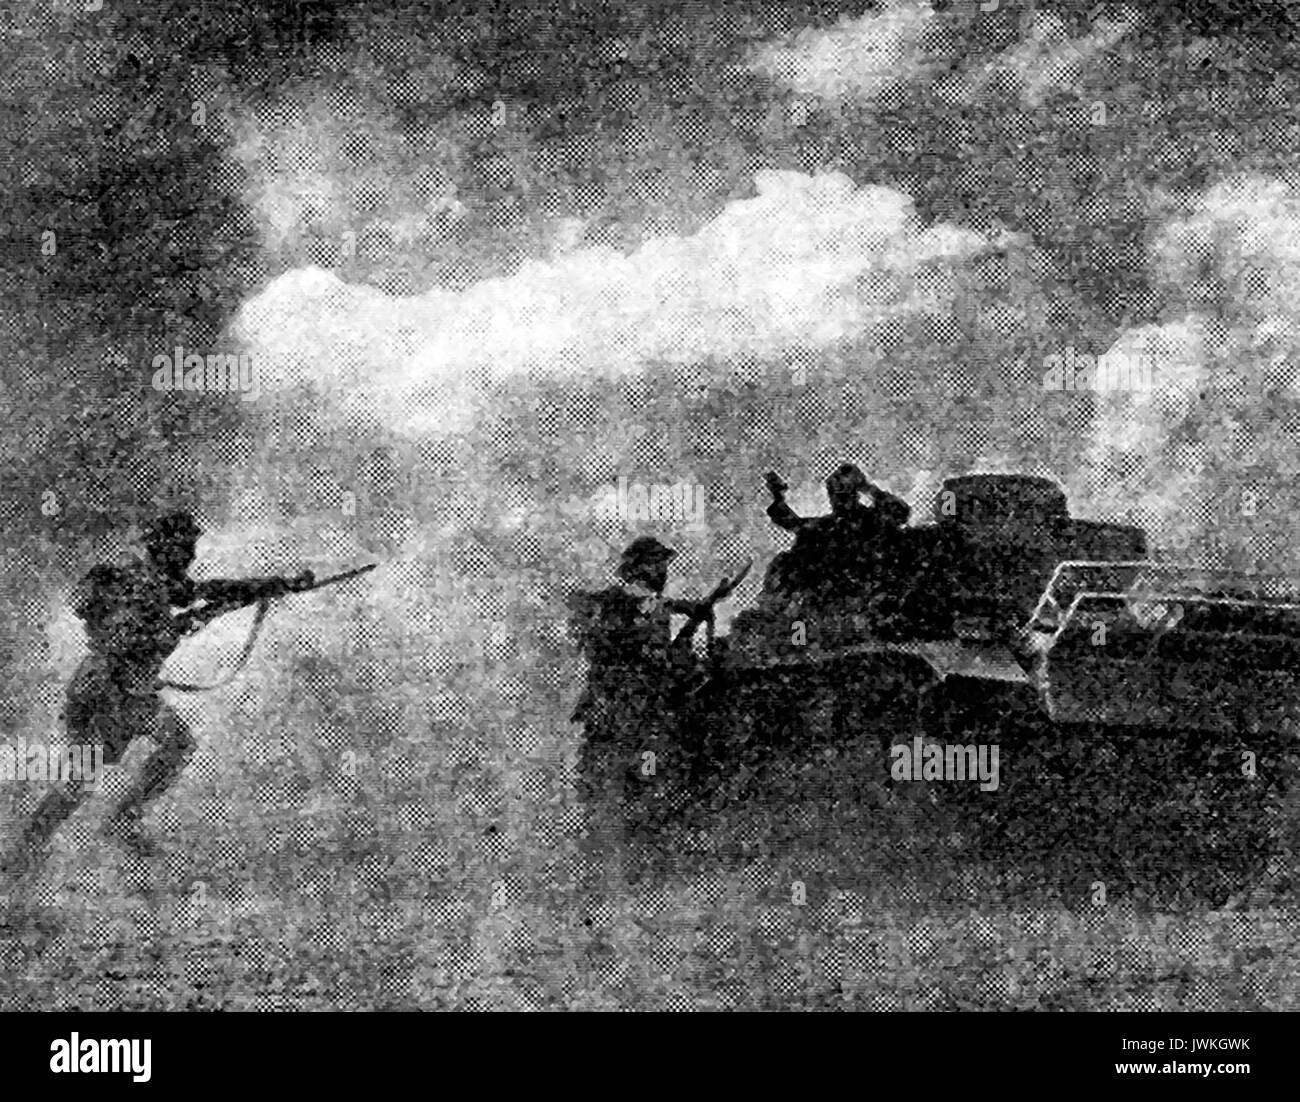 a 1942 depiction of the 1st battle of Alamein with a German tank crew surrendering to British forces. - Stock Image